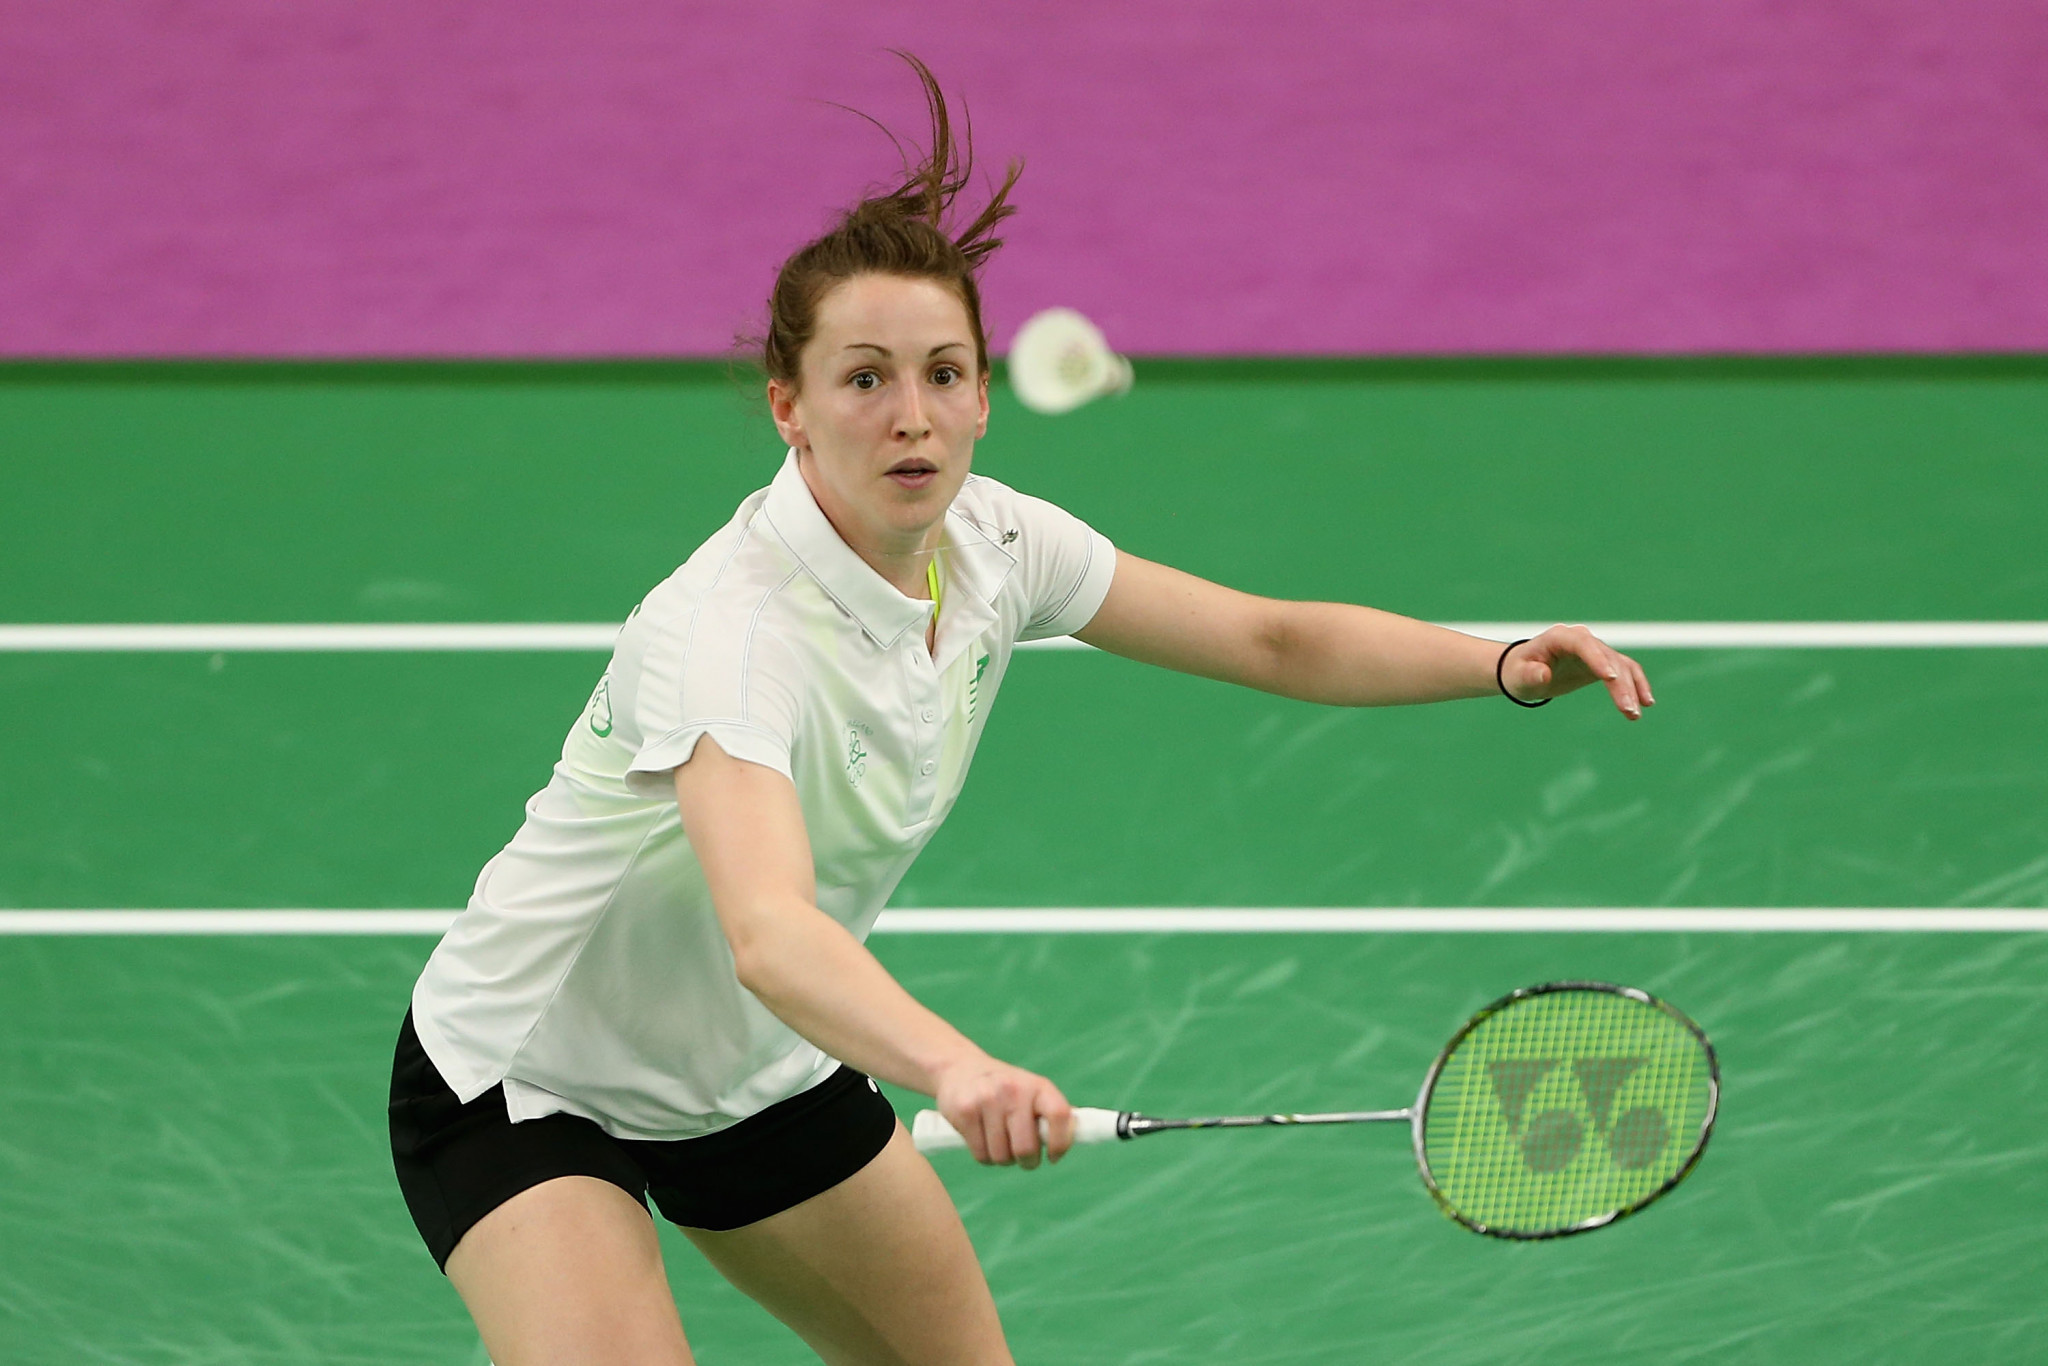 Badminton player Chloe Magee will be Ireland's flagbearer at the Opening Ceremony of the Minsk 2019 European Games ©Getty Images